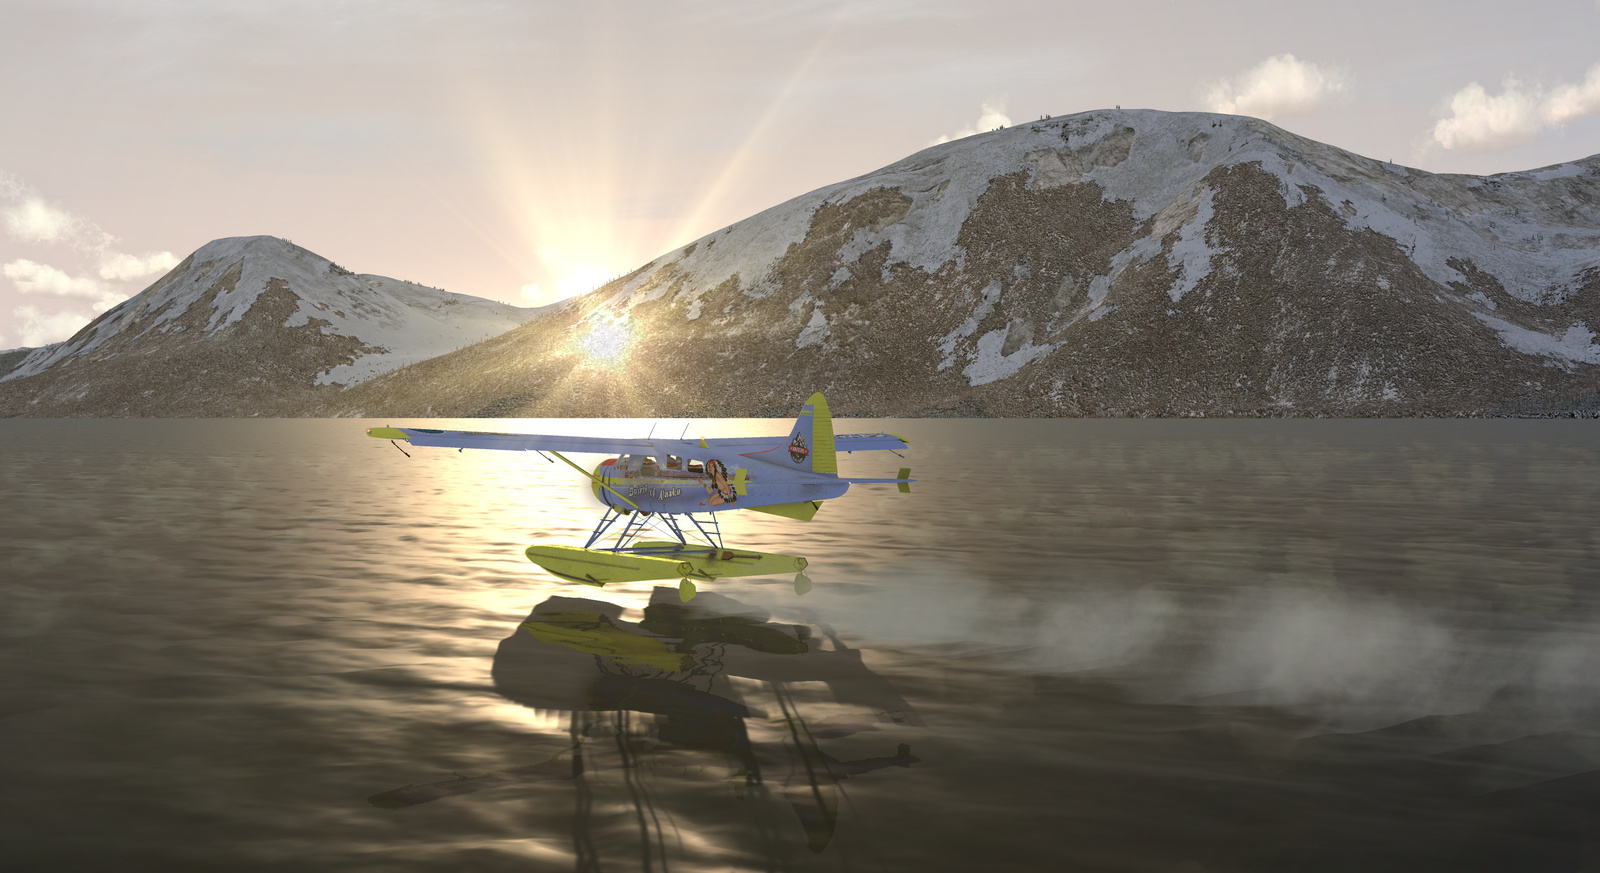 DHC-2 Beaver, Spirit of Alaska, Straight Floats version, Screenshot 11/19